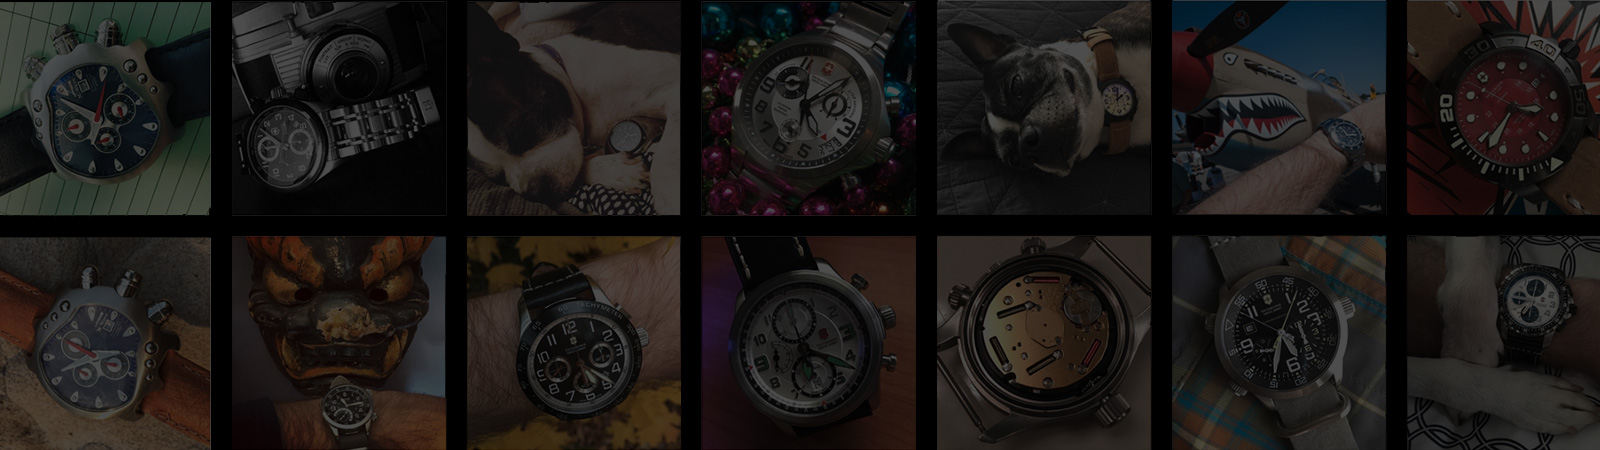 Using Instagram to Discover New Watches and Share Your Watches